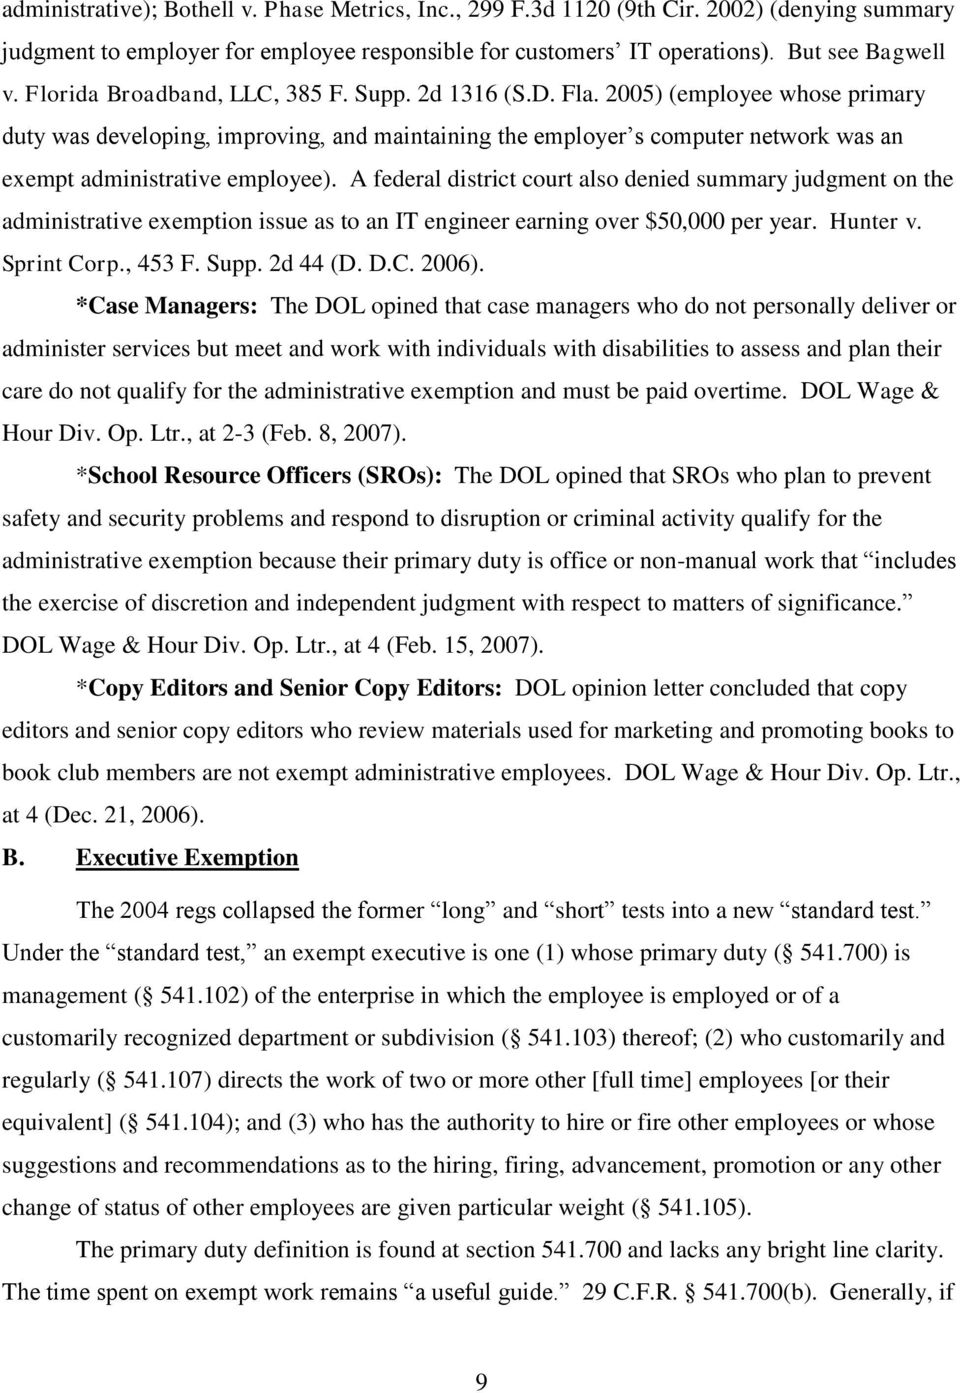 2005) (employee whose primary duty was developing, improving, and maintaining the employer s computer network was an exempt administrative employee).